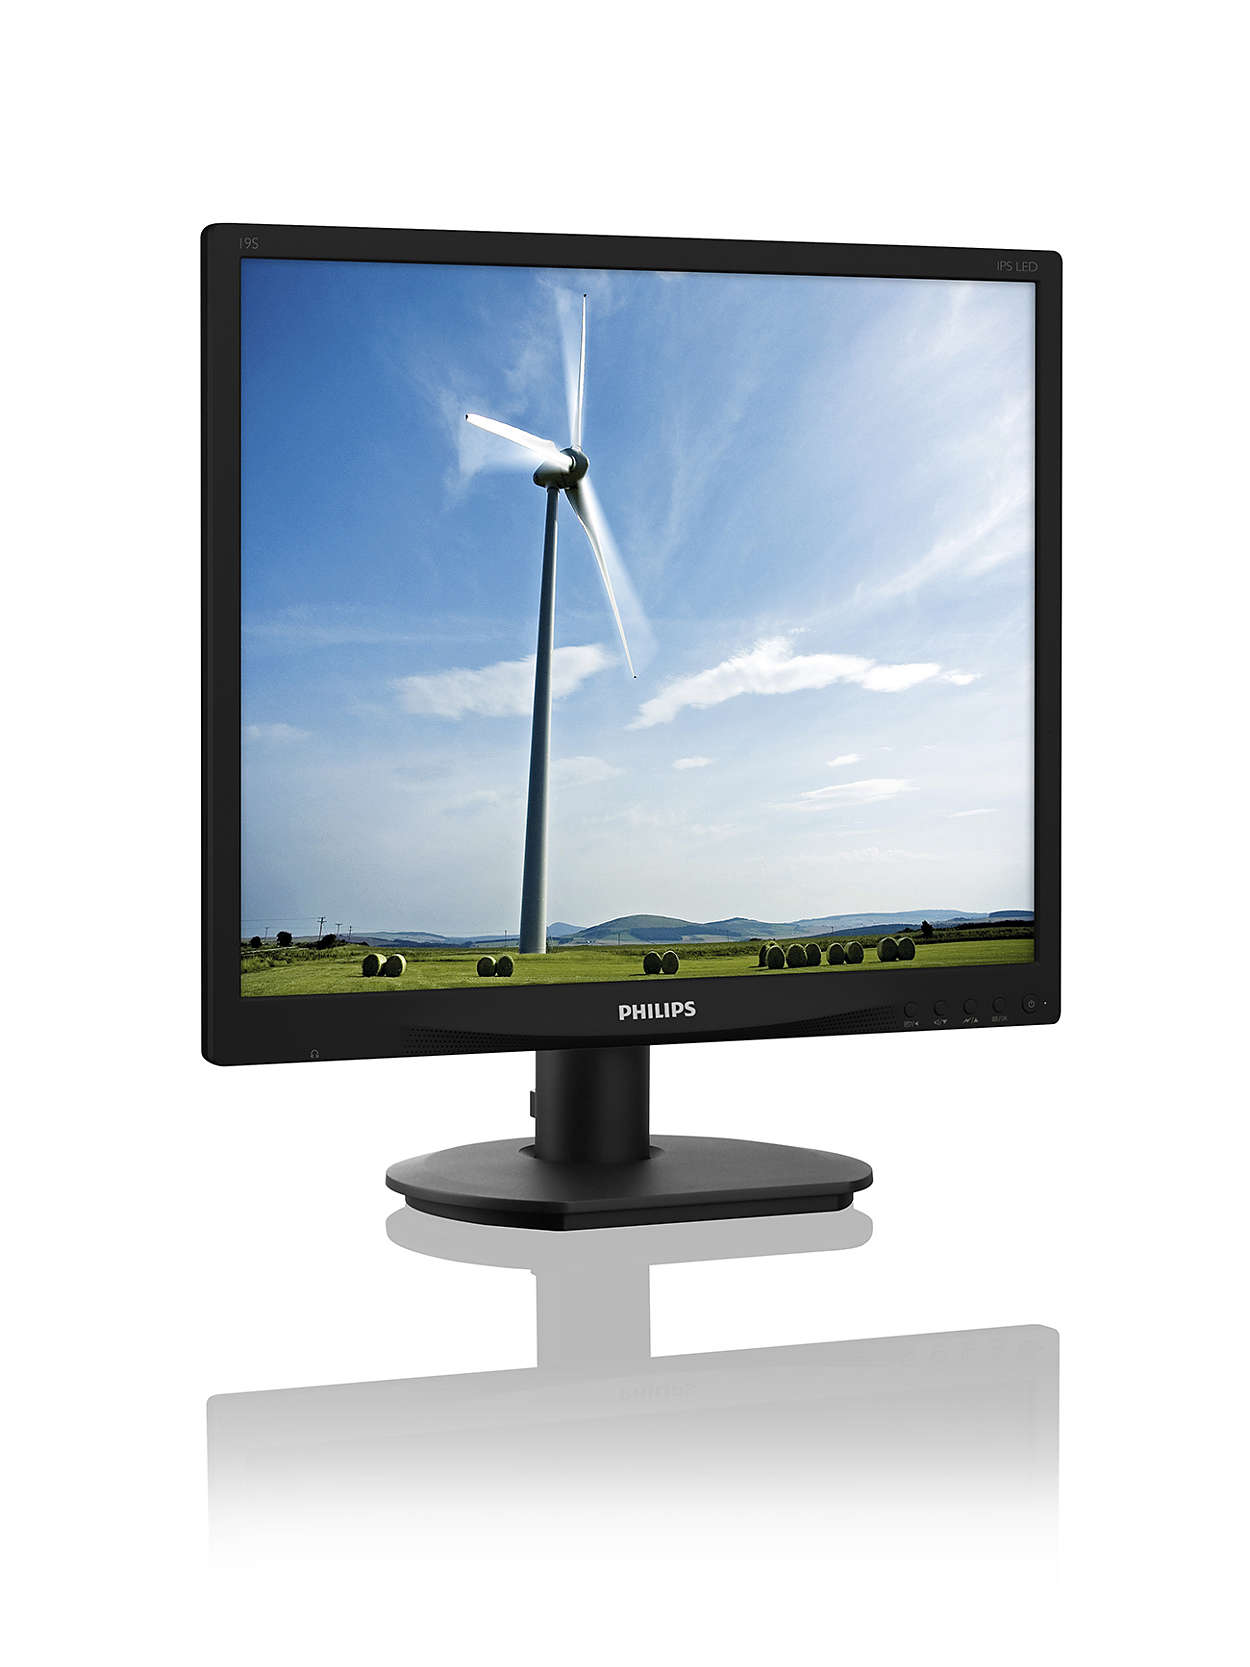 "Philips LCD 19S4QAB/00 19"" IPS/1280x1024/5ms/20m:1/250cd/VGA/DVI/repro/vesa"